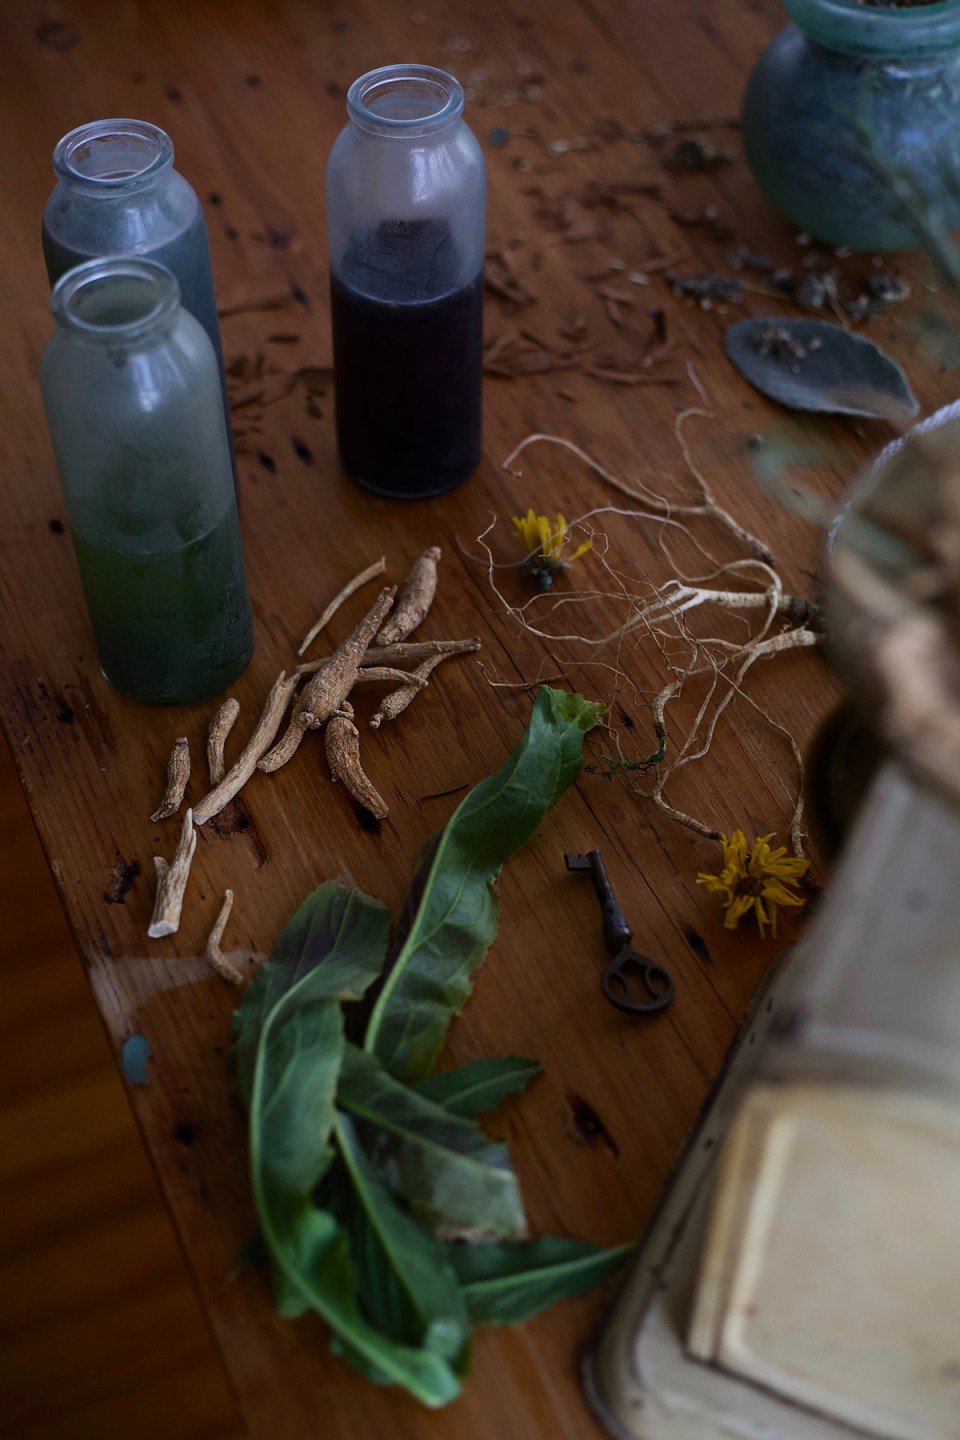 Herbalism: A History - How Herbalists Of The Past Paved The Way For Today | Herbal Academy | Have you ever wondered how modern-day herbalism came to be? Read on to discover how the history of herbalism paved the way for today.